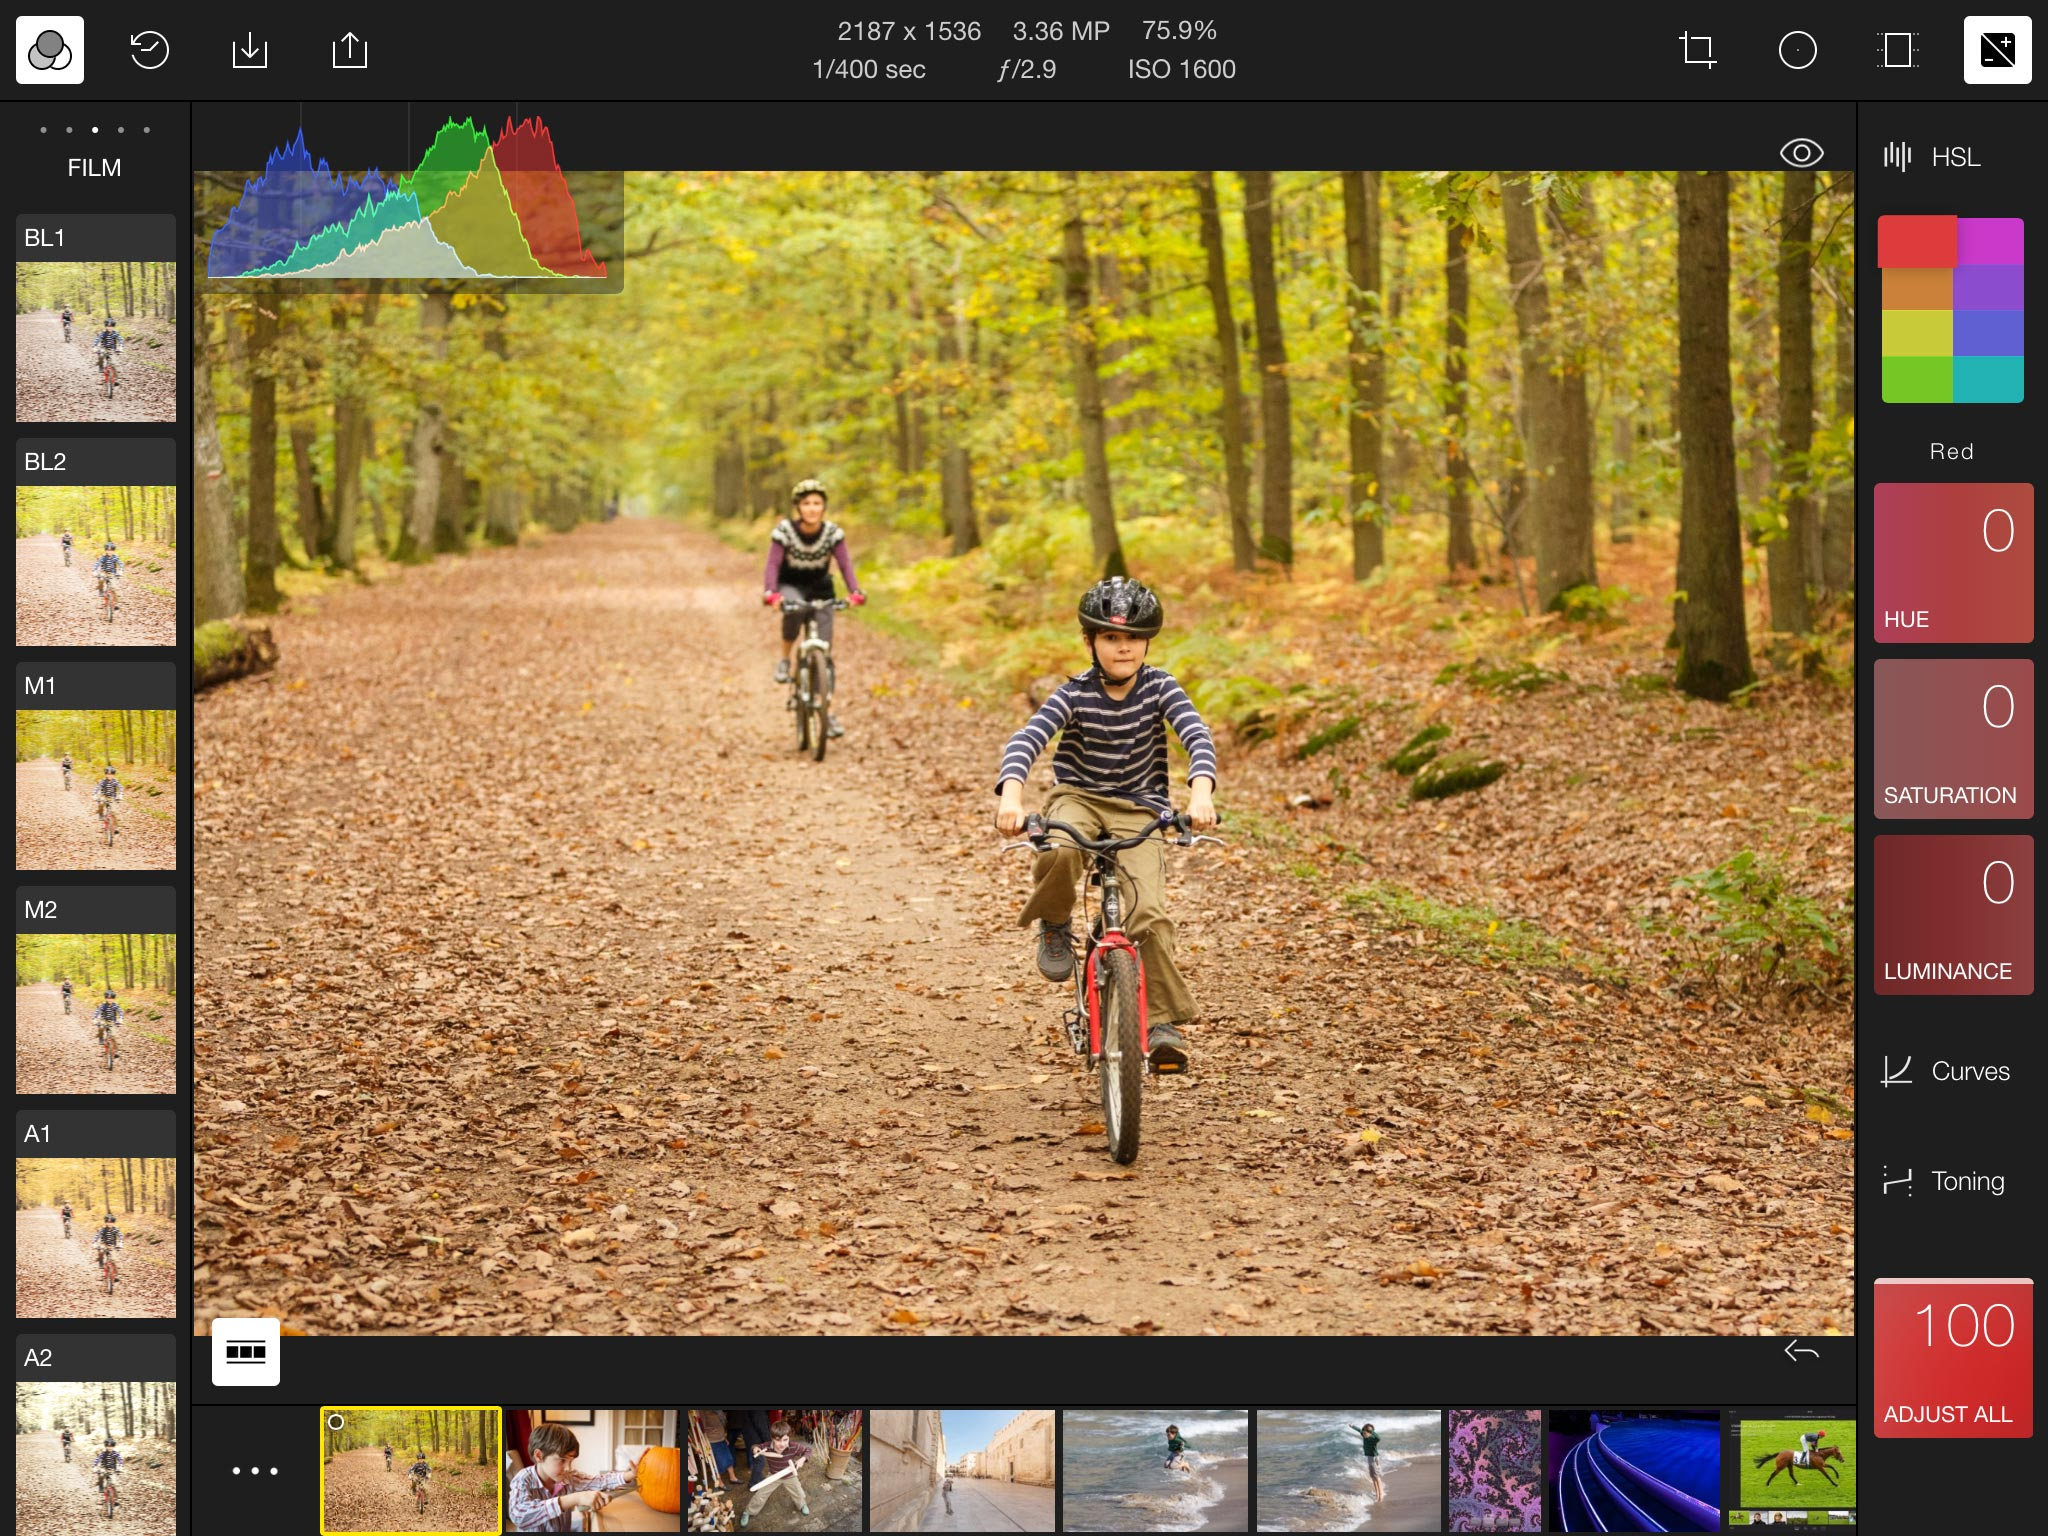 The Polarr image editor for iOS is built using the same Web technologies used by websites.